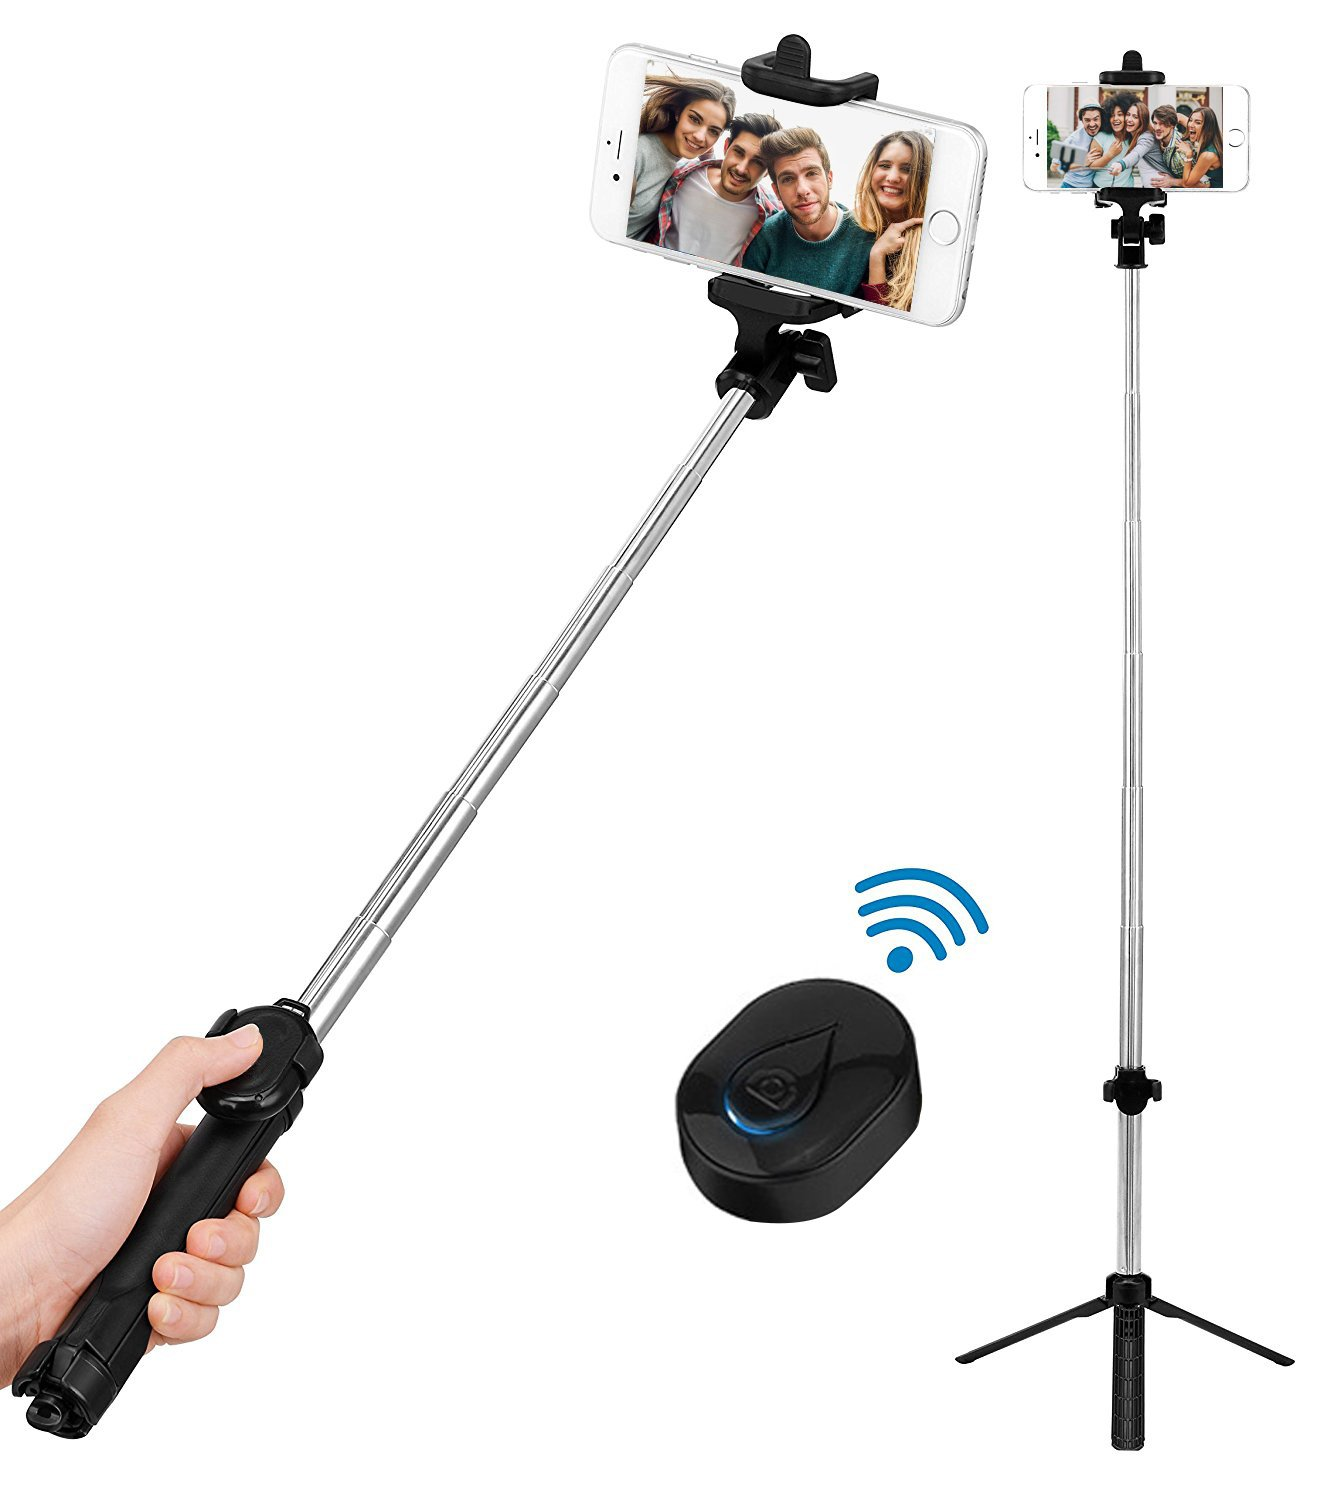 Bluetooth Selfie Stick Tripod, BOKIN wireless Selfie Stick for iPhone 6/iPhone 6 Plus/iPhone 7/iPhone 7 plus/iPhone 8/iPhone 8 plus/iPhone X and Samsung note 8/S8 and other Android Phones by BOKIN (Image #1)